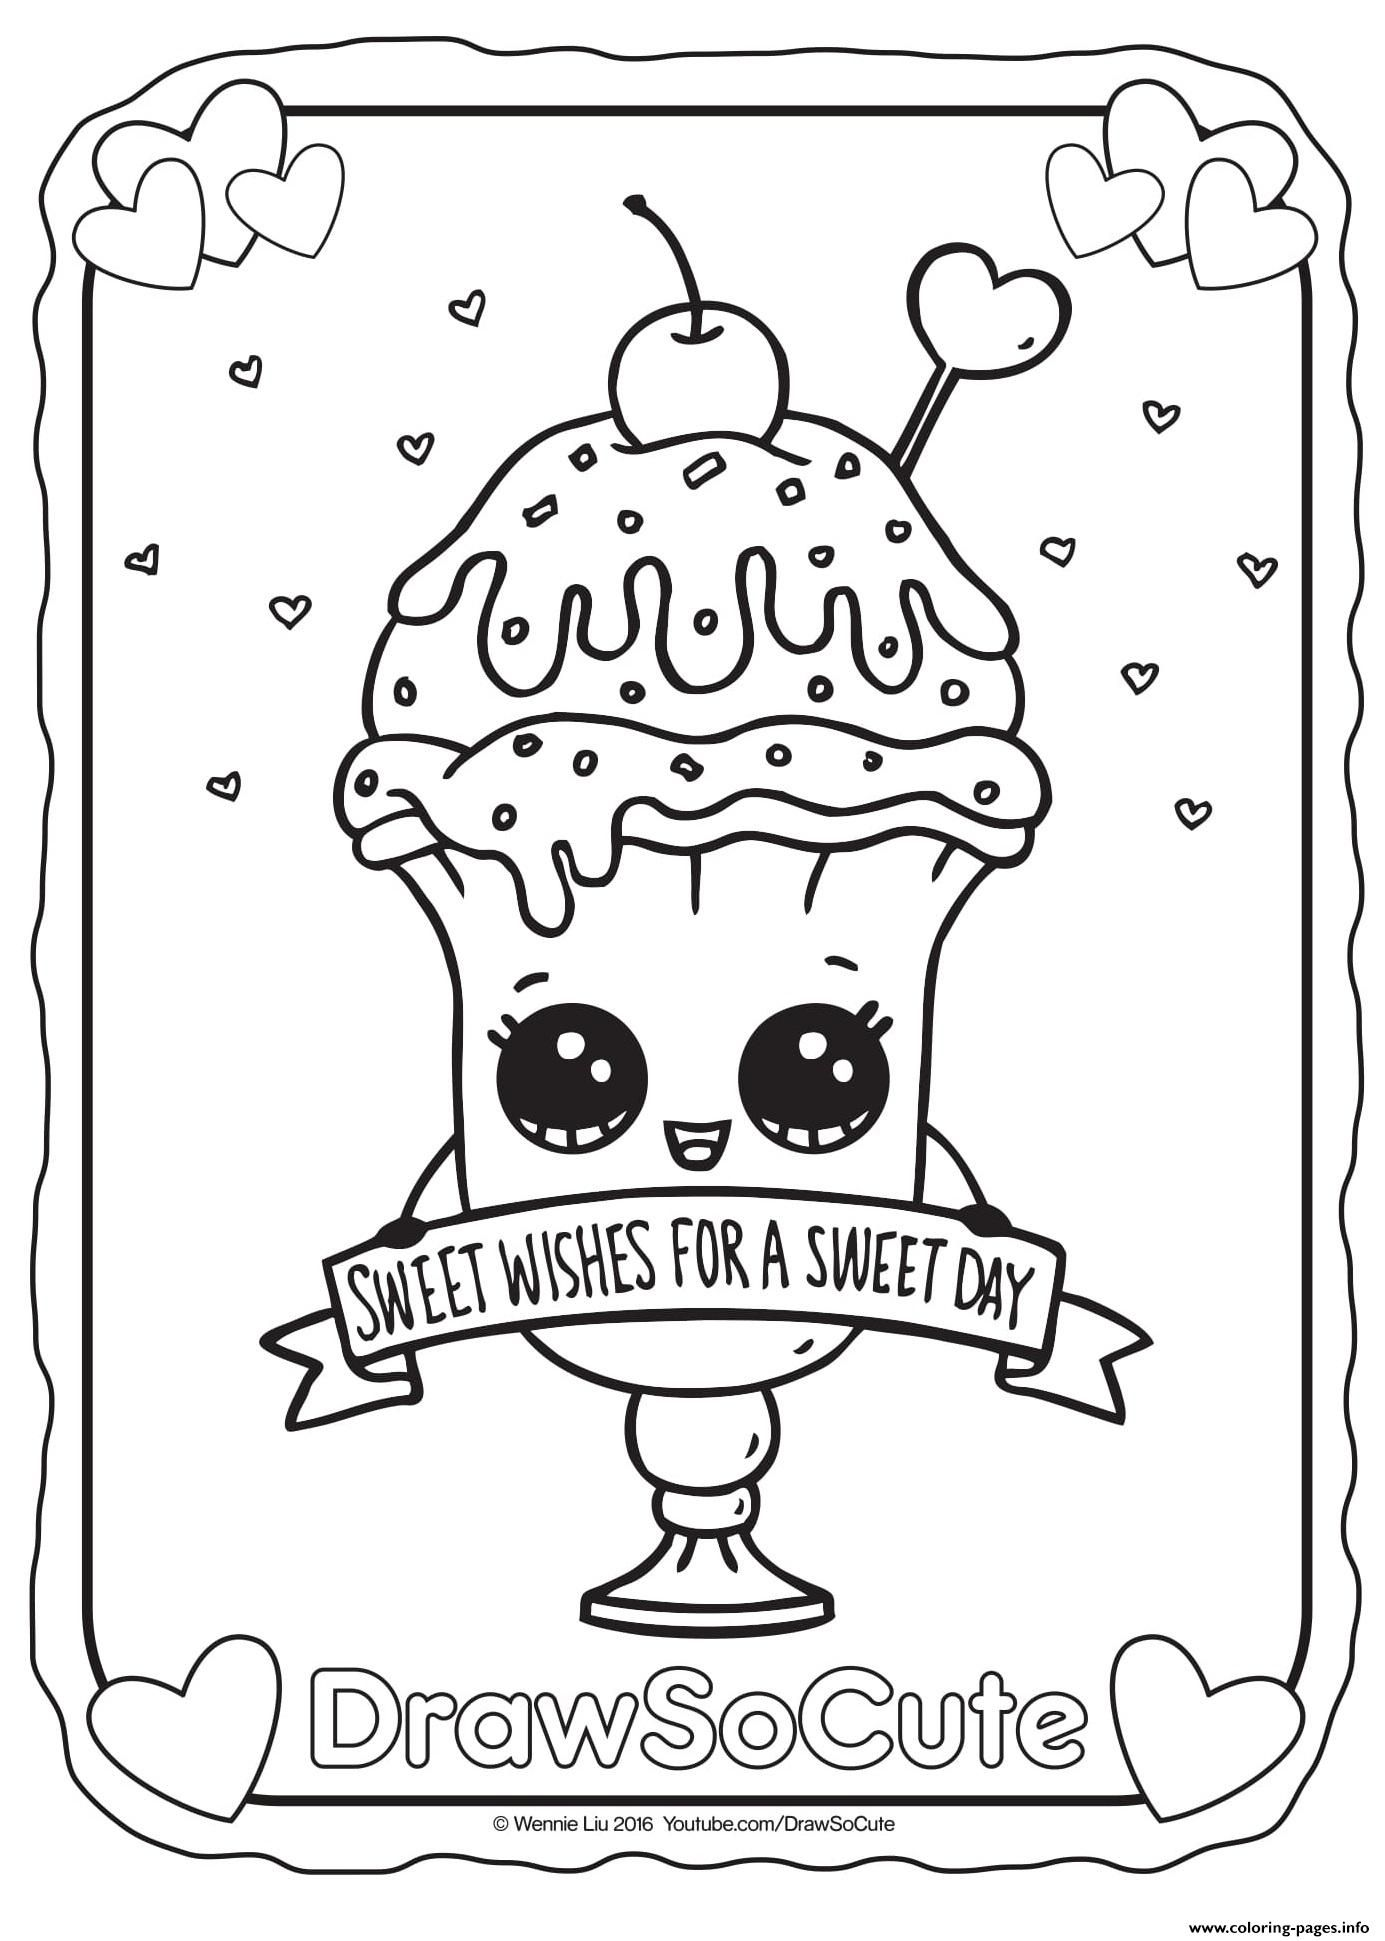 Draw so Cute Coloring Pages - 14 - D - Sundae Coloring Page Image